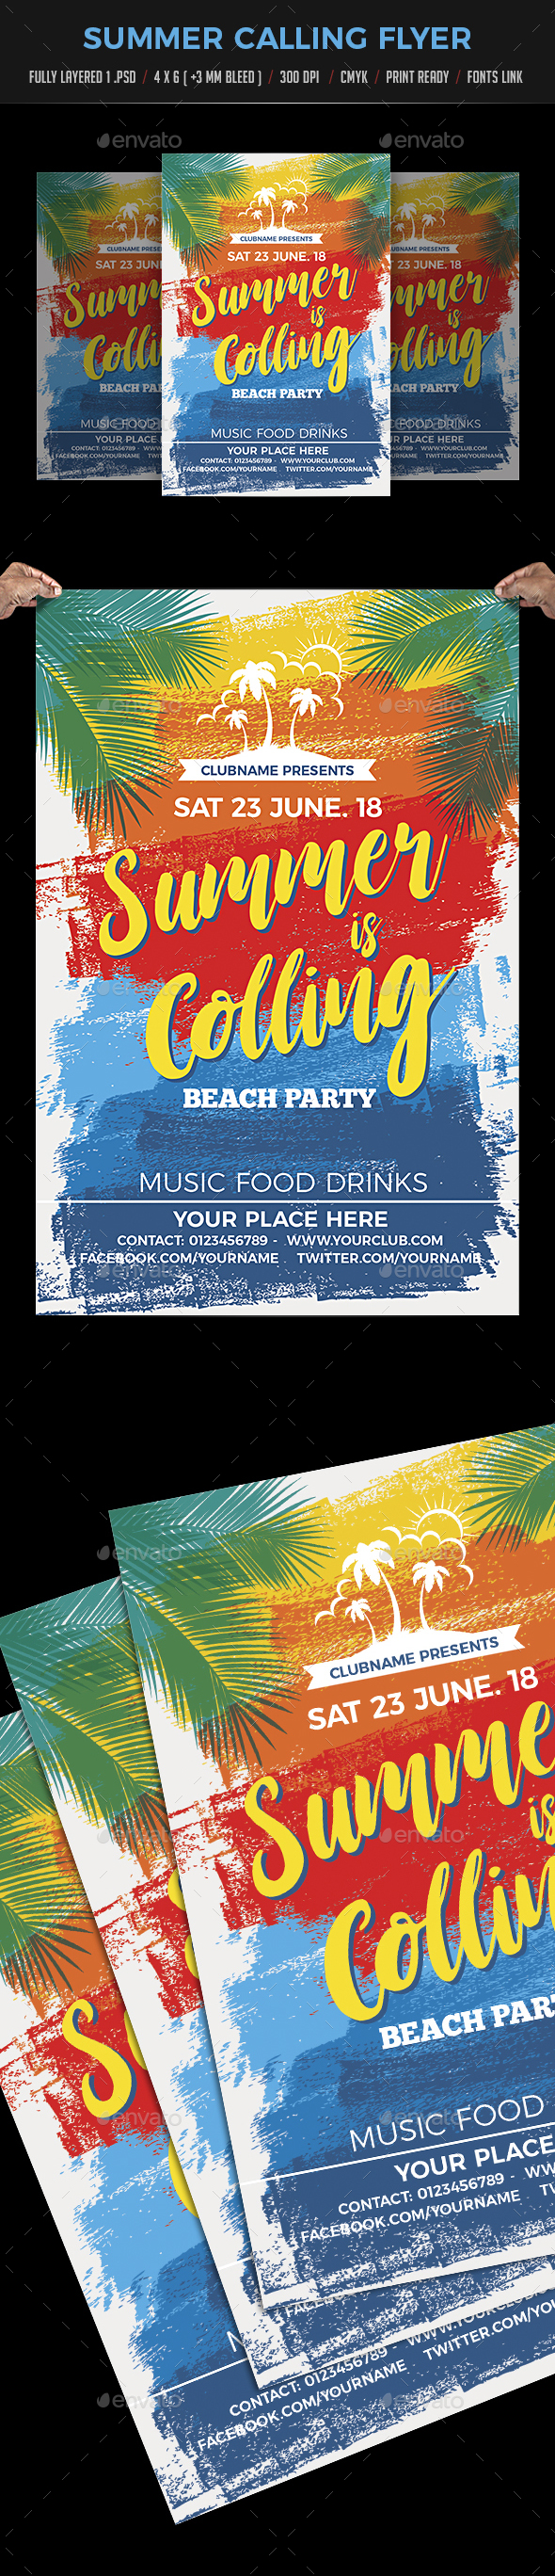 Summer Calling / Beach Party Flyer - Clubs & Parties Events